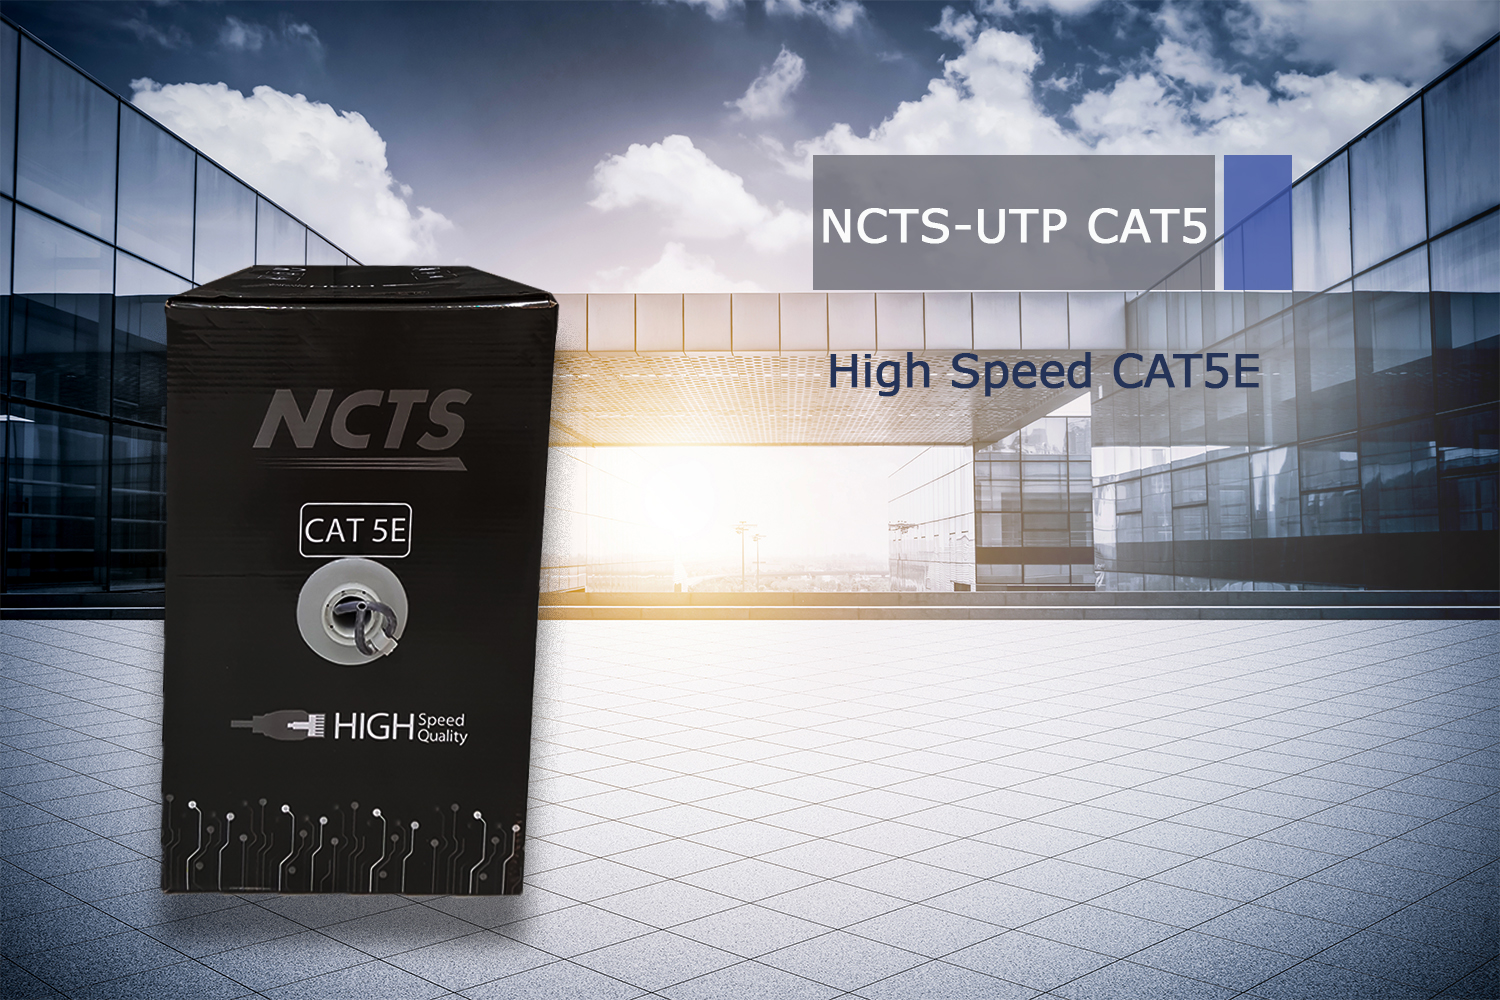 NCTS CAT 5E UTP HIGH SPEED CABLE 305M